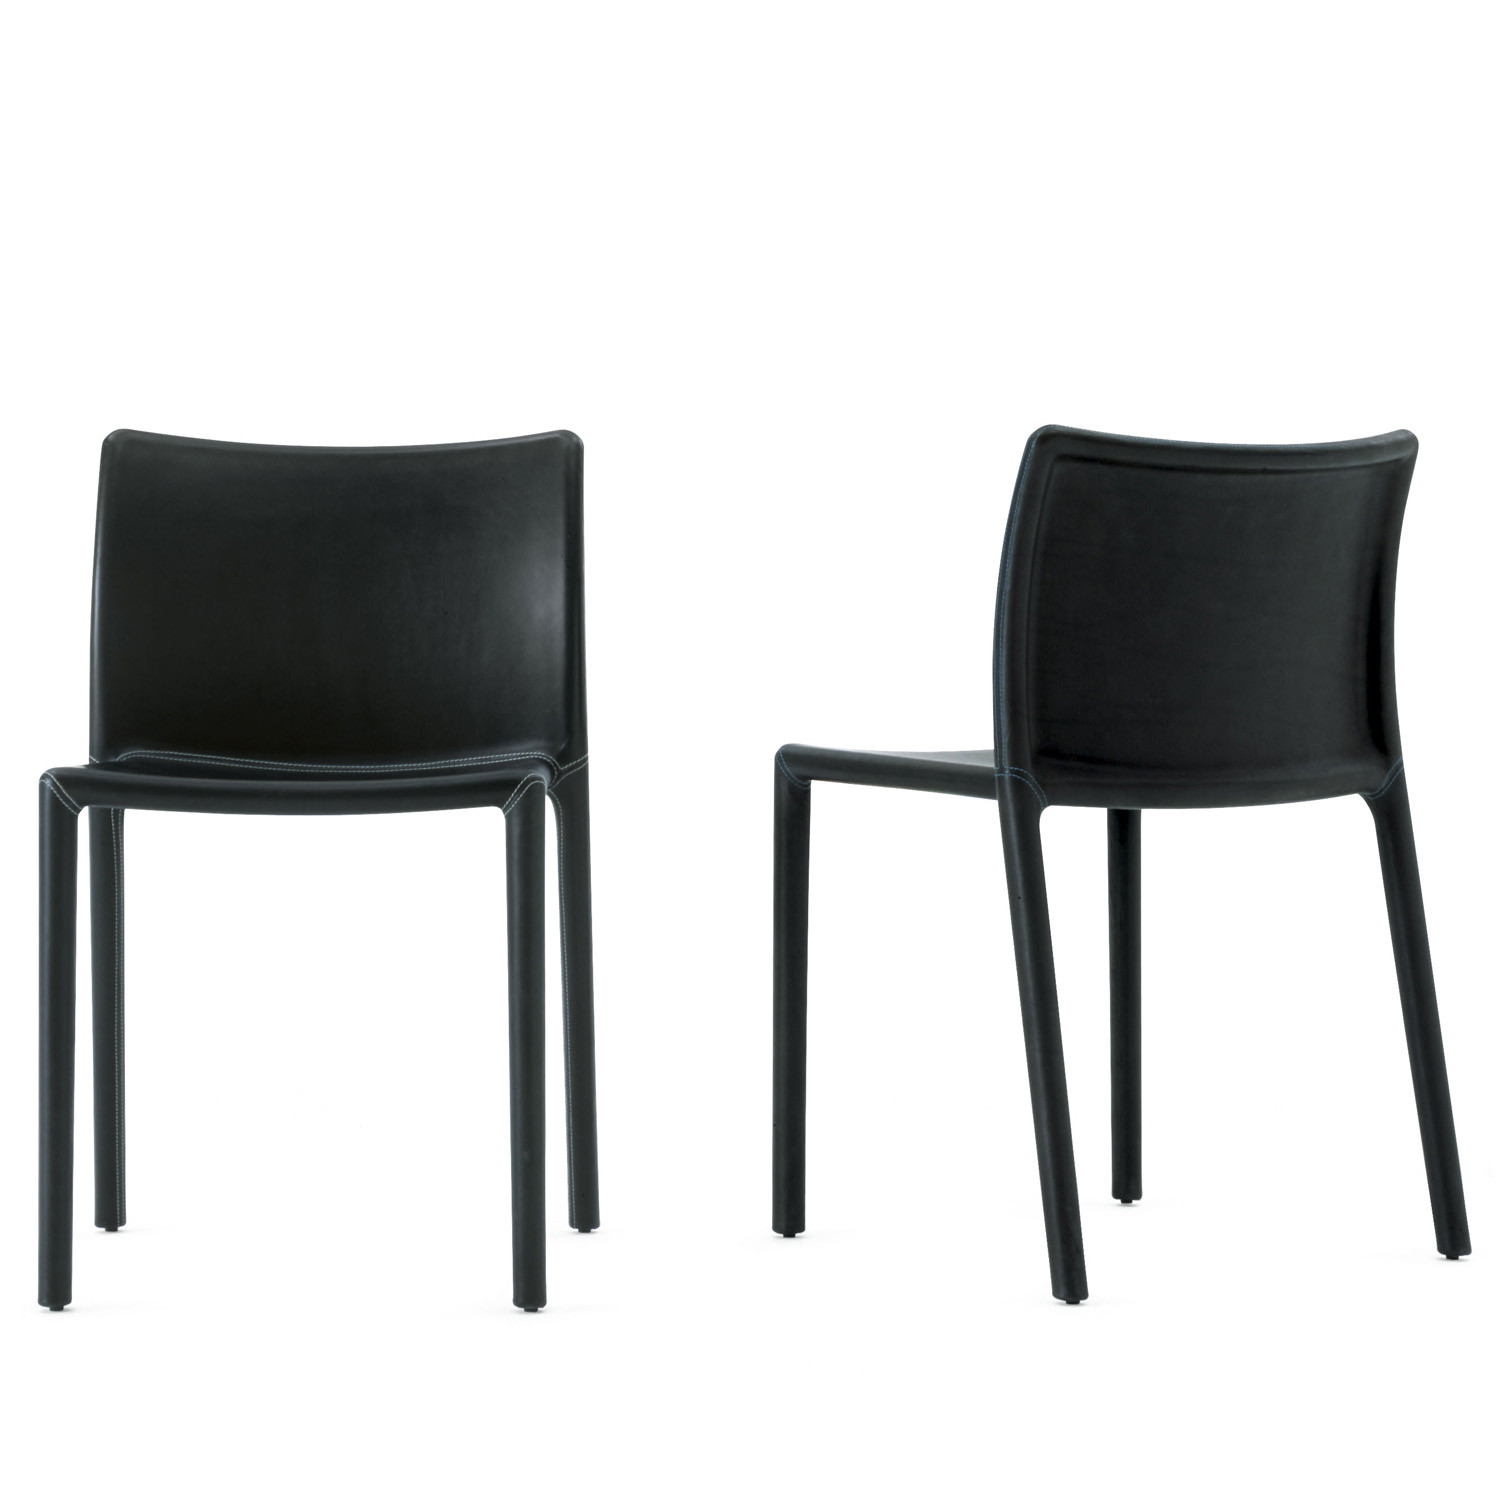 Lac Chair by Cappellini